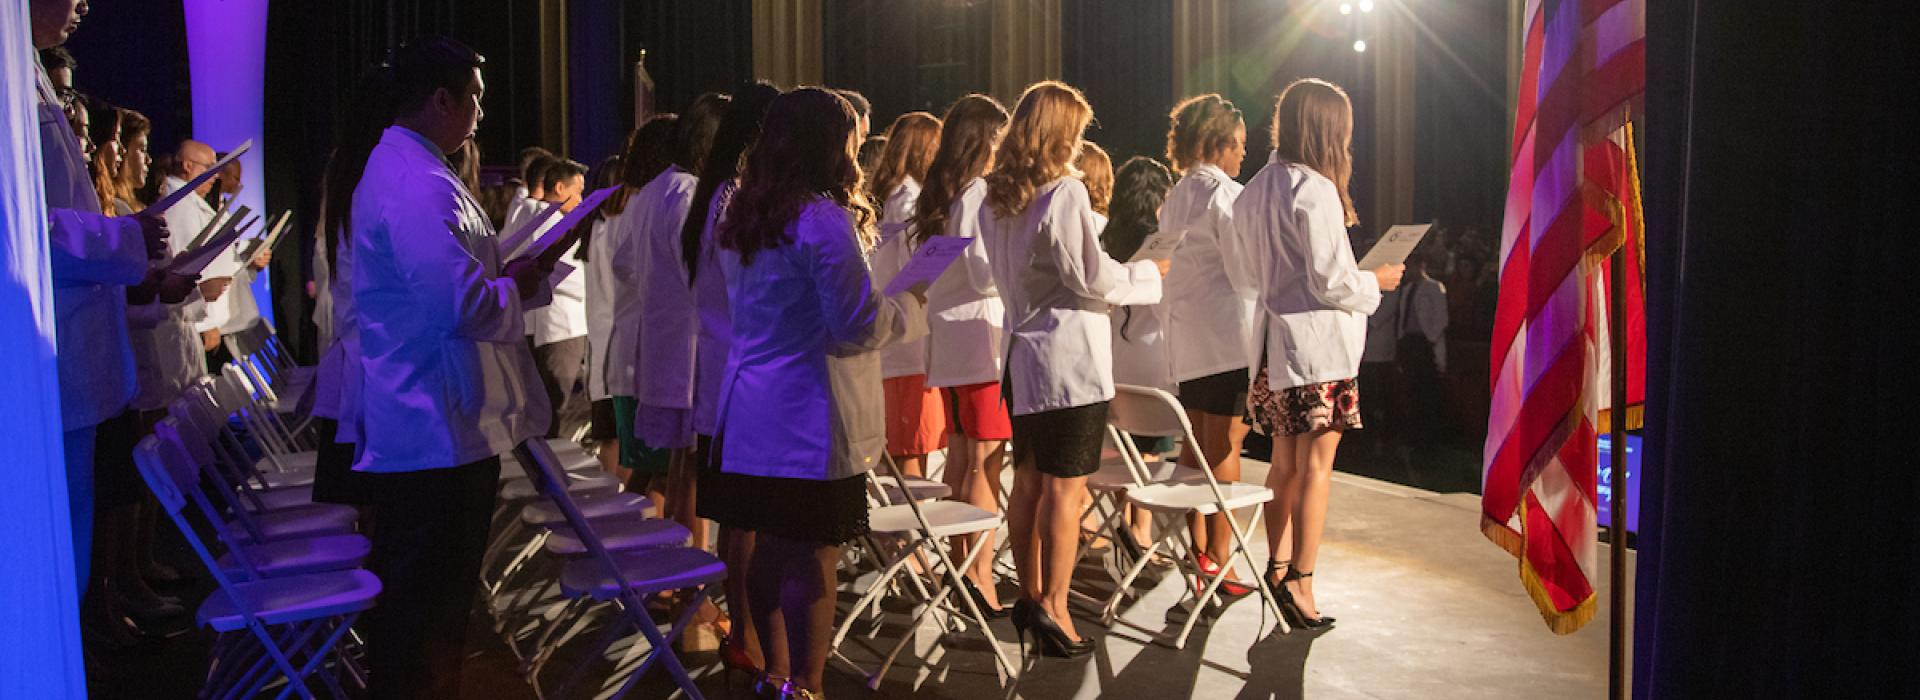 Students wearing white coats backstage